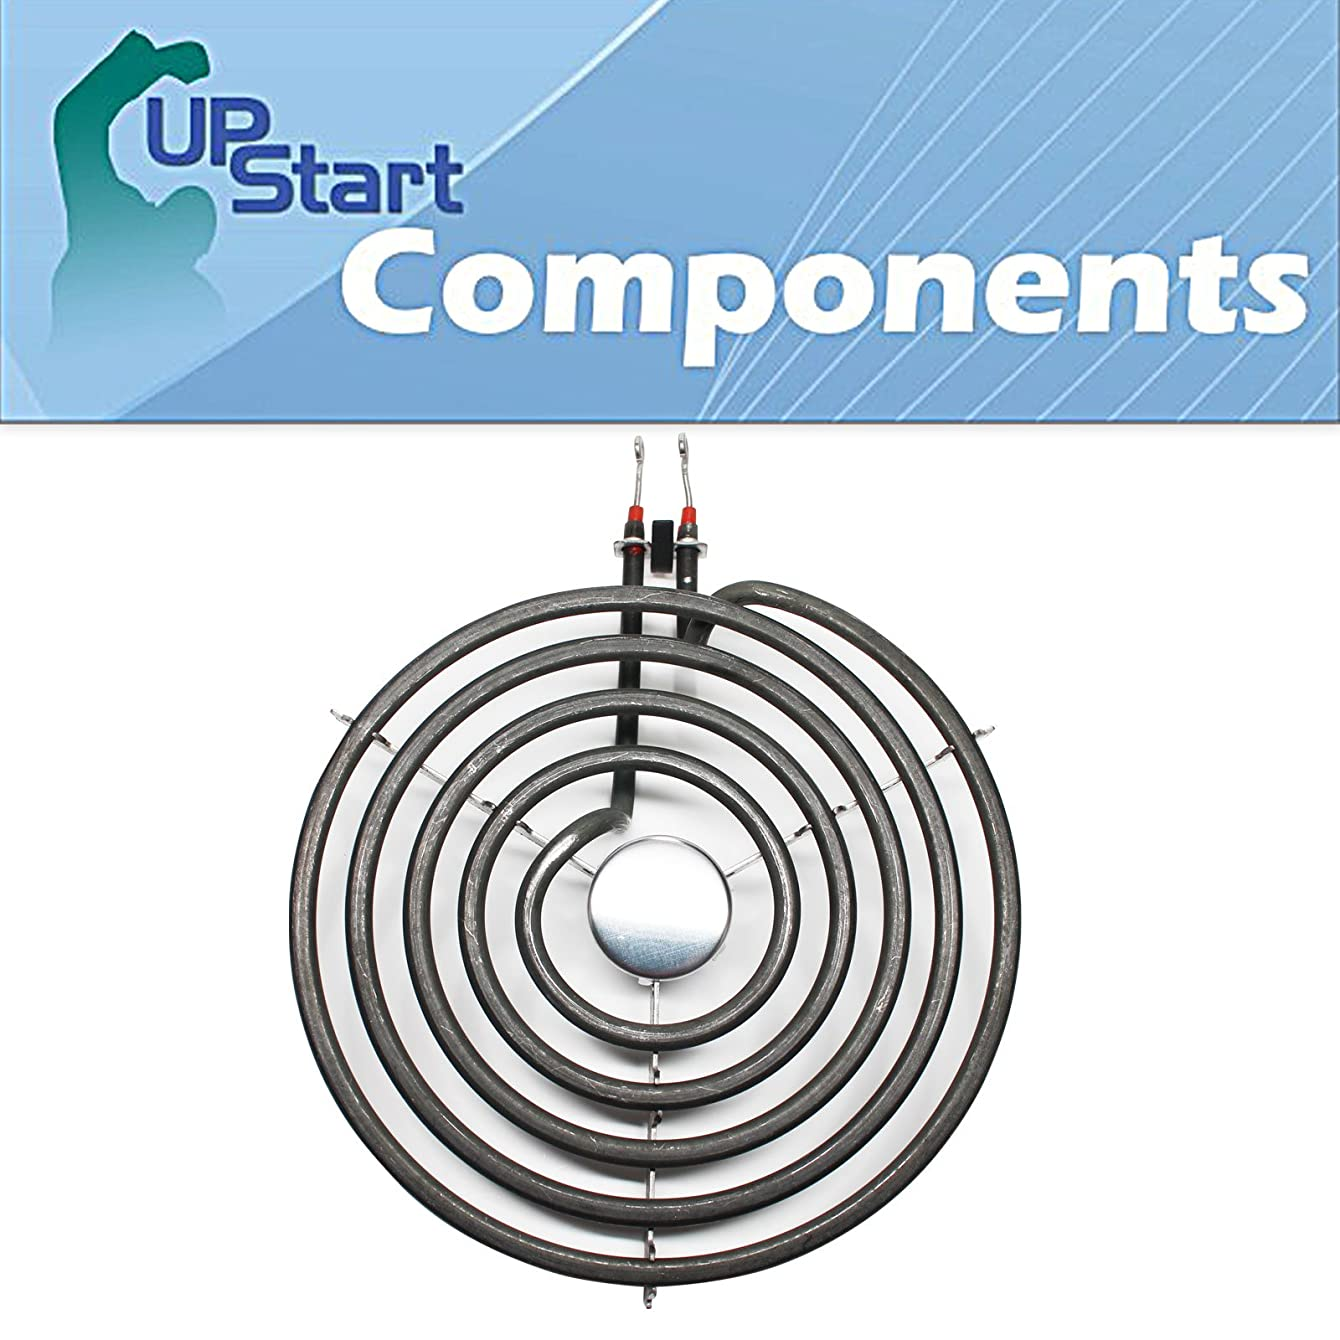 Replacement Caloric EST3102W 8 inch 5 Turns Surface Burner Element - Compatible Caloric 9761345 Heating Element for Range, Stove & Cooktop